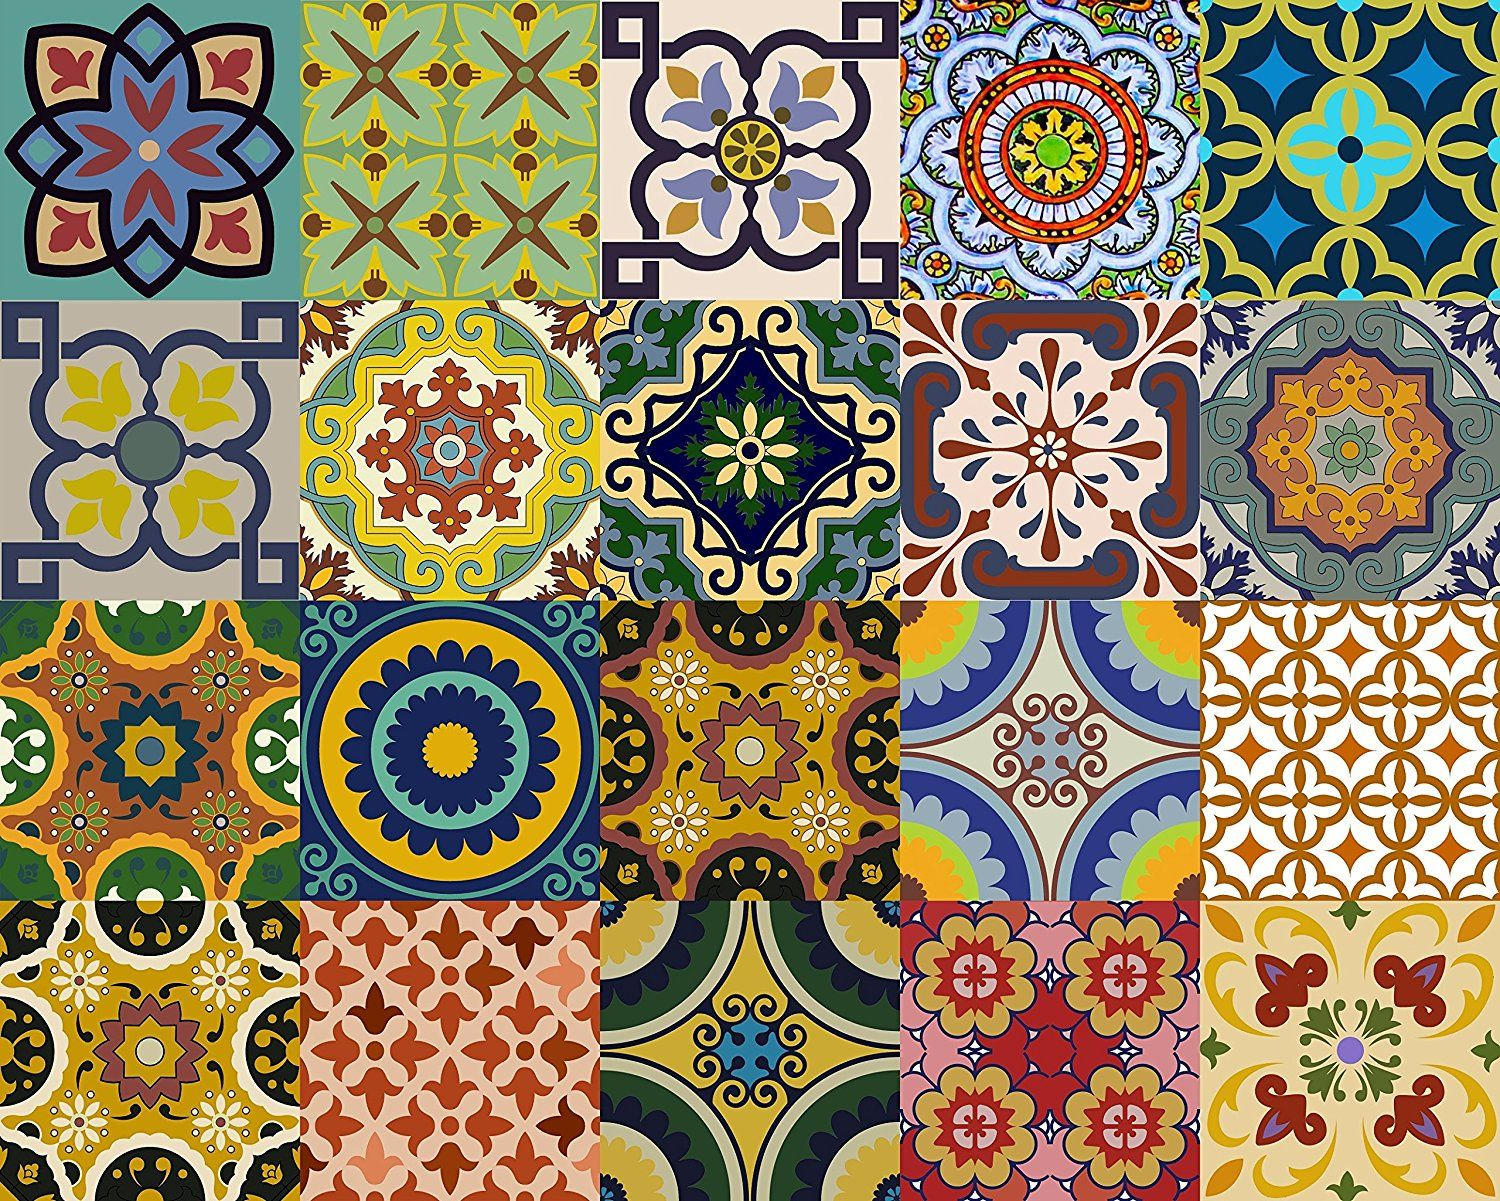 Backslash Peel and Stick C Backsplash Tile Stickers 24 PC Set Traditional Talavera Tiles Stickers Bathroom /& Kitchen Tile Decals Easy to Apply Just Peel and Stick Home Decor 4x4 Inch